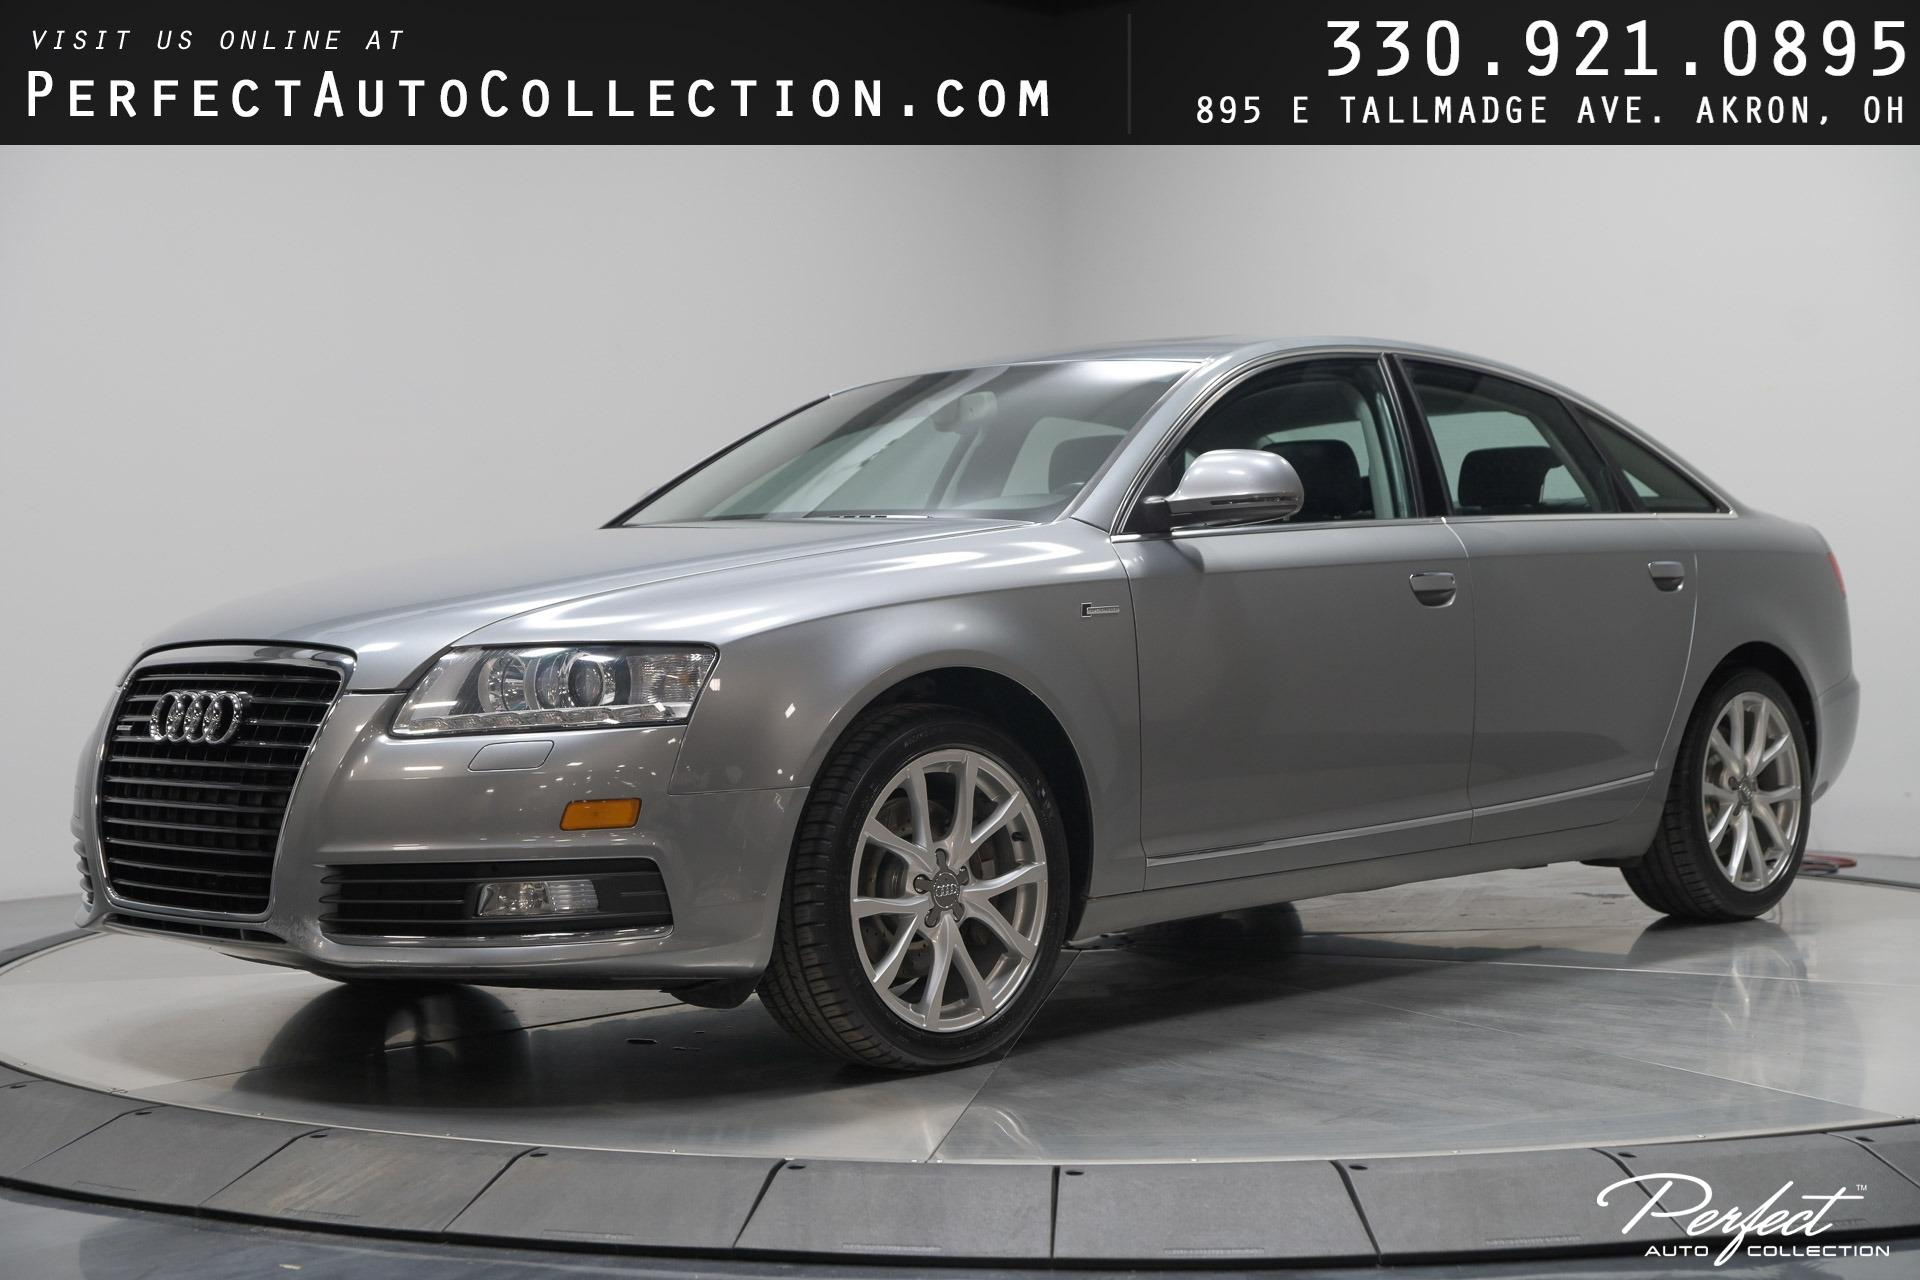 Used 2010 Audi A6 3.0T quattro Premium Plus for sale $9,895 at Perfect Auto Collection in Akron OH 44310 1